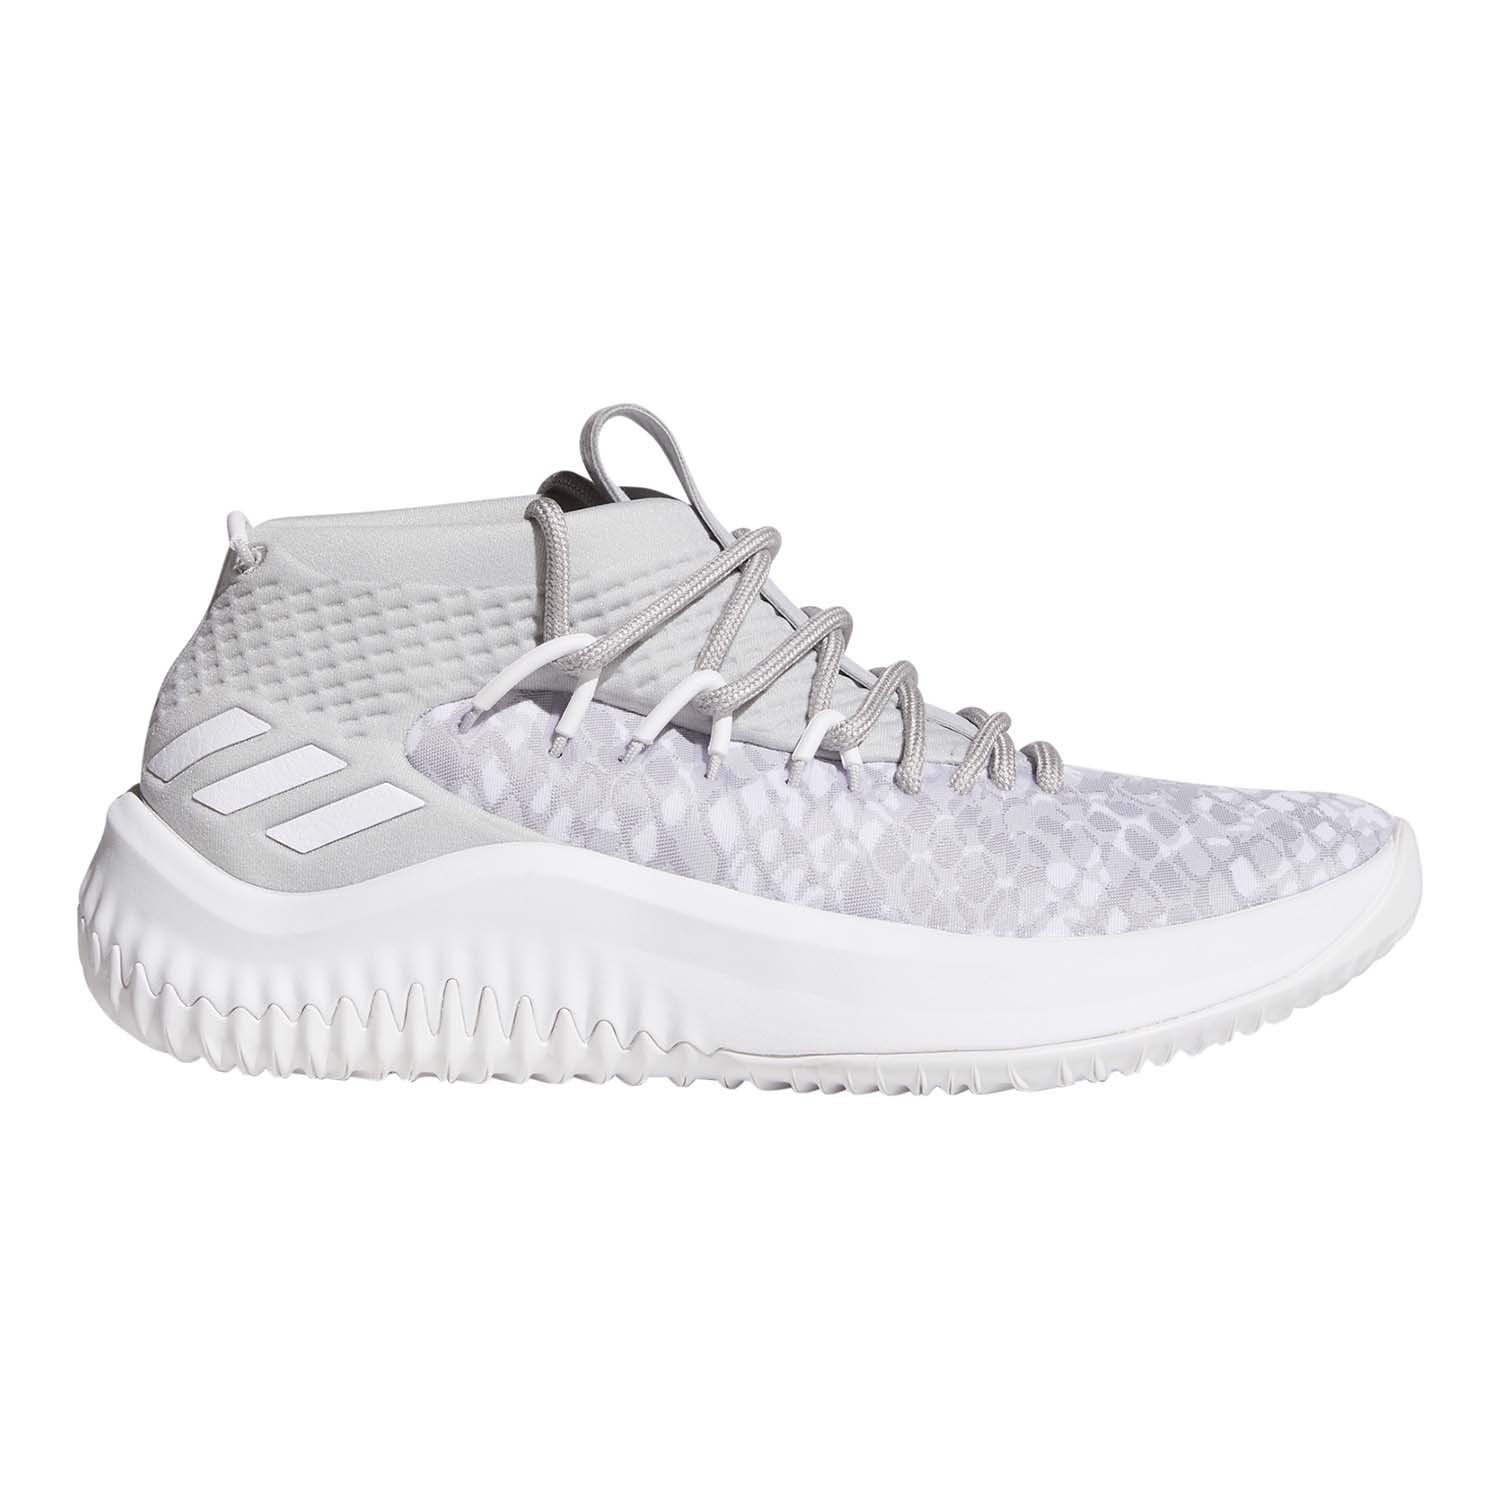 newest 5b6c9 b00be Galleon - Adidas Dame 4 Shoe - Juniors Basketball 4.5 Casual BlackFootwear  WhiteScarlet